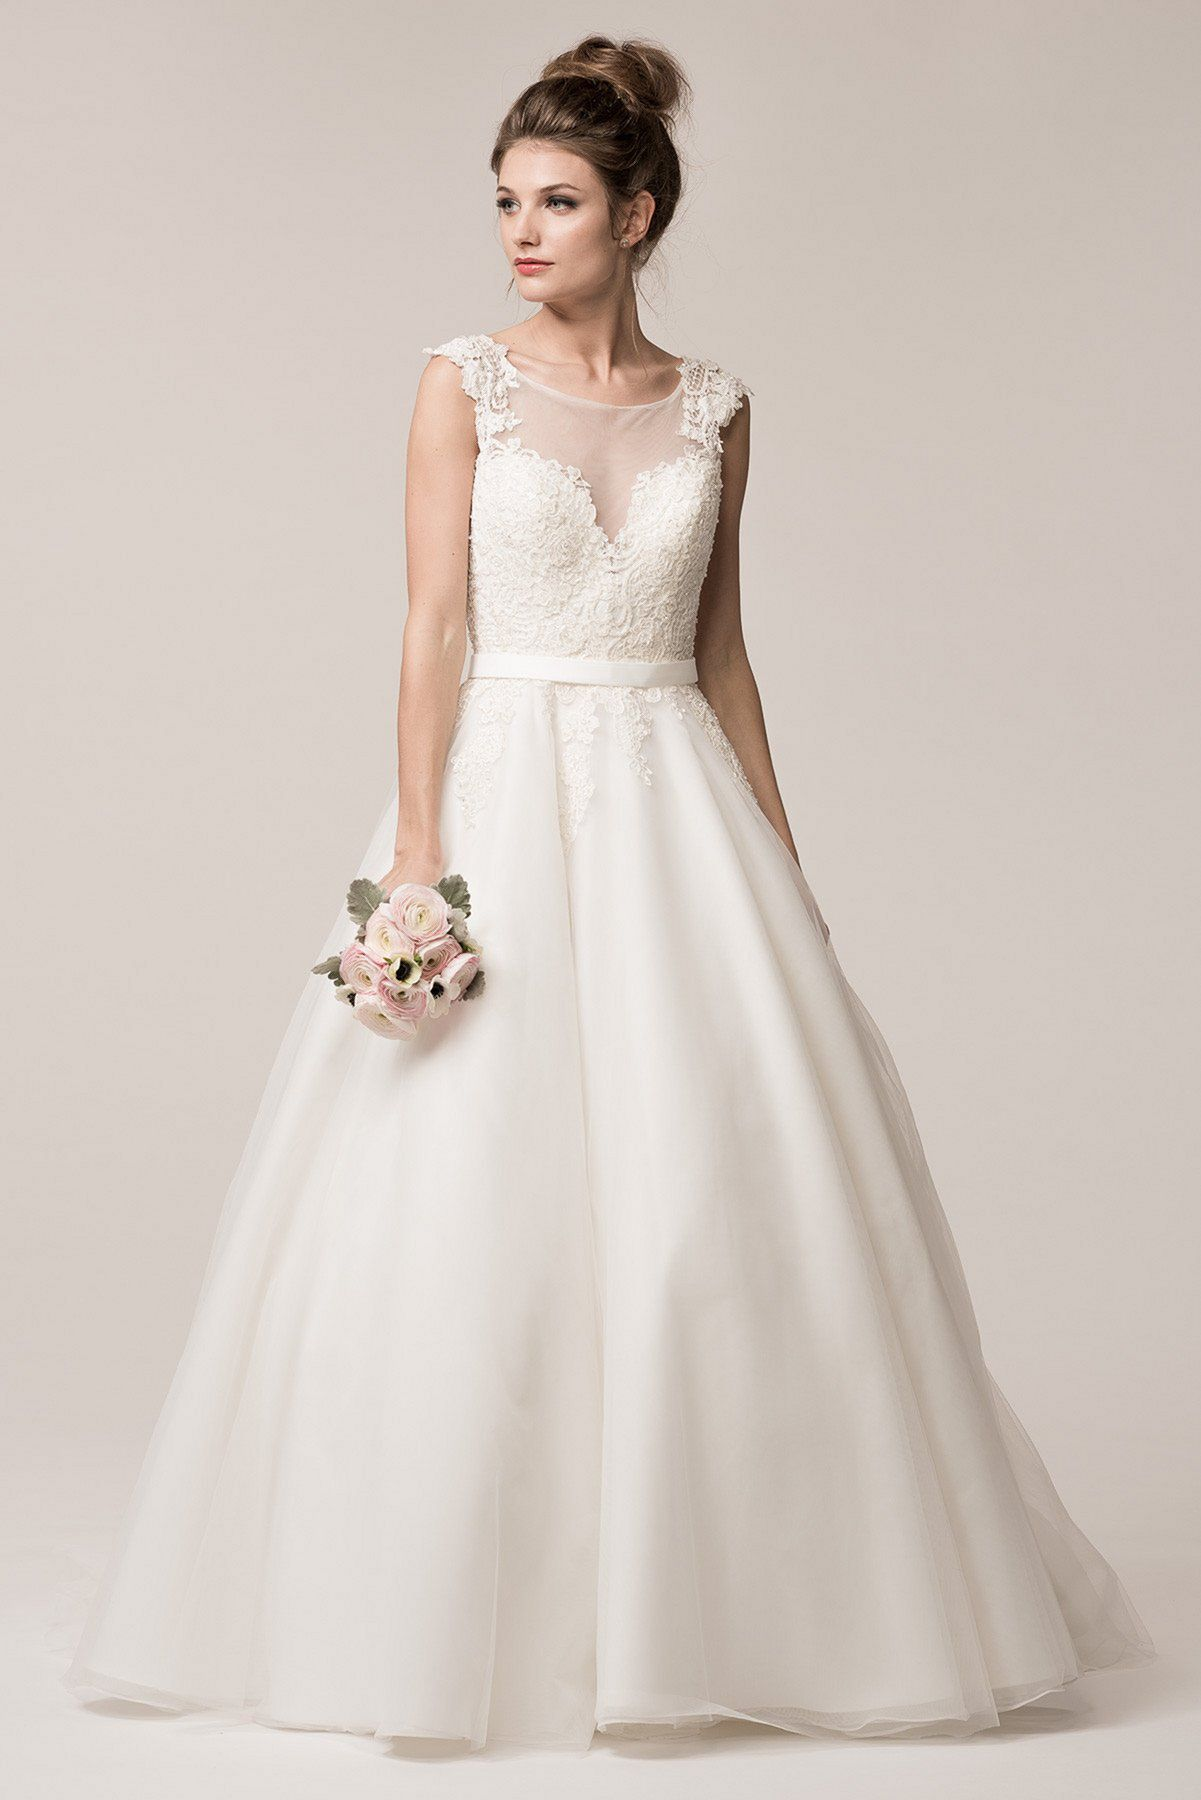 20 princess ball gown wedding dresses that look more